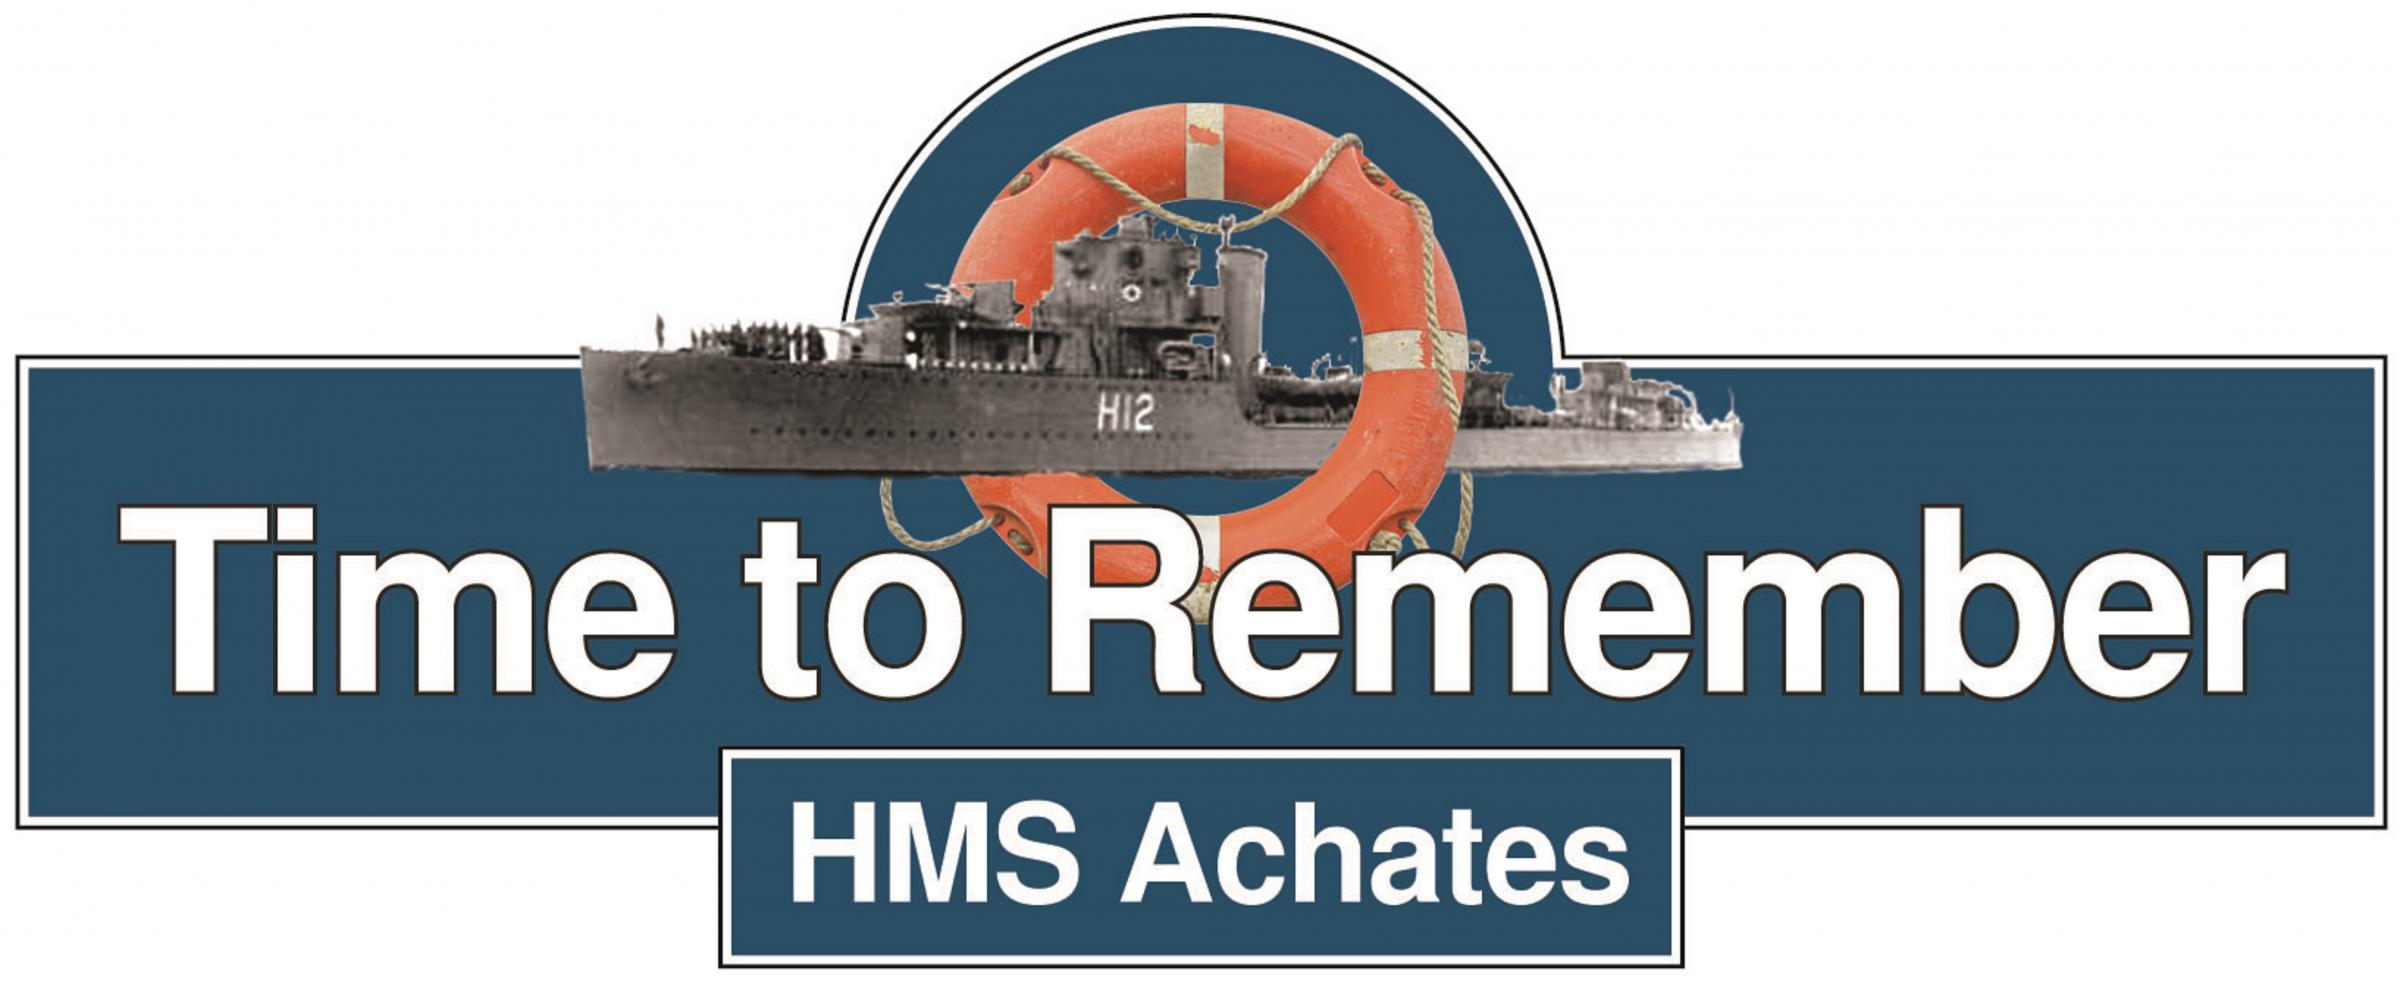 Time to Remember - HMS Achates